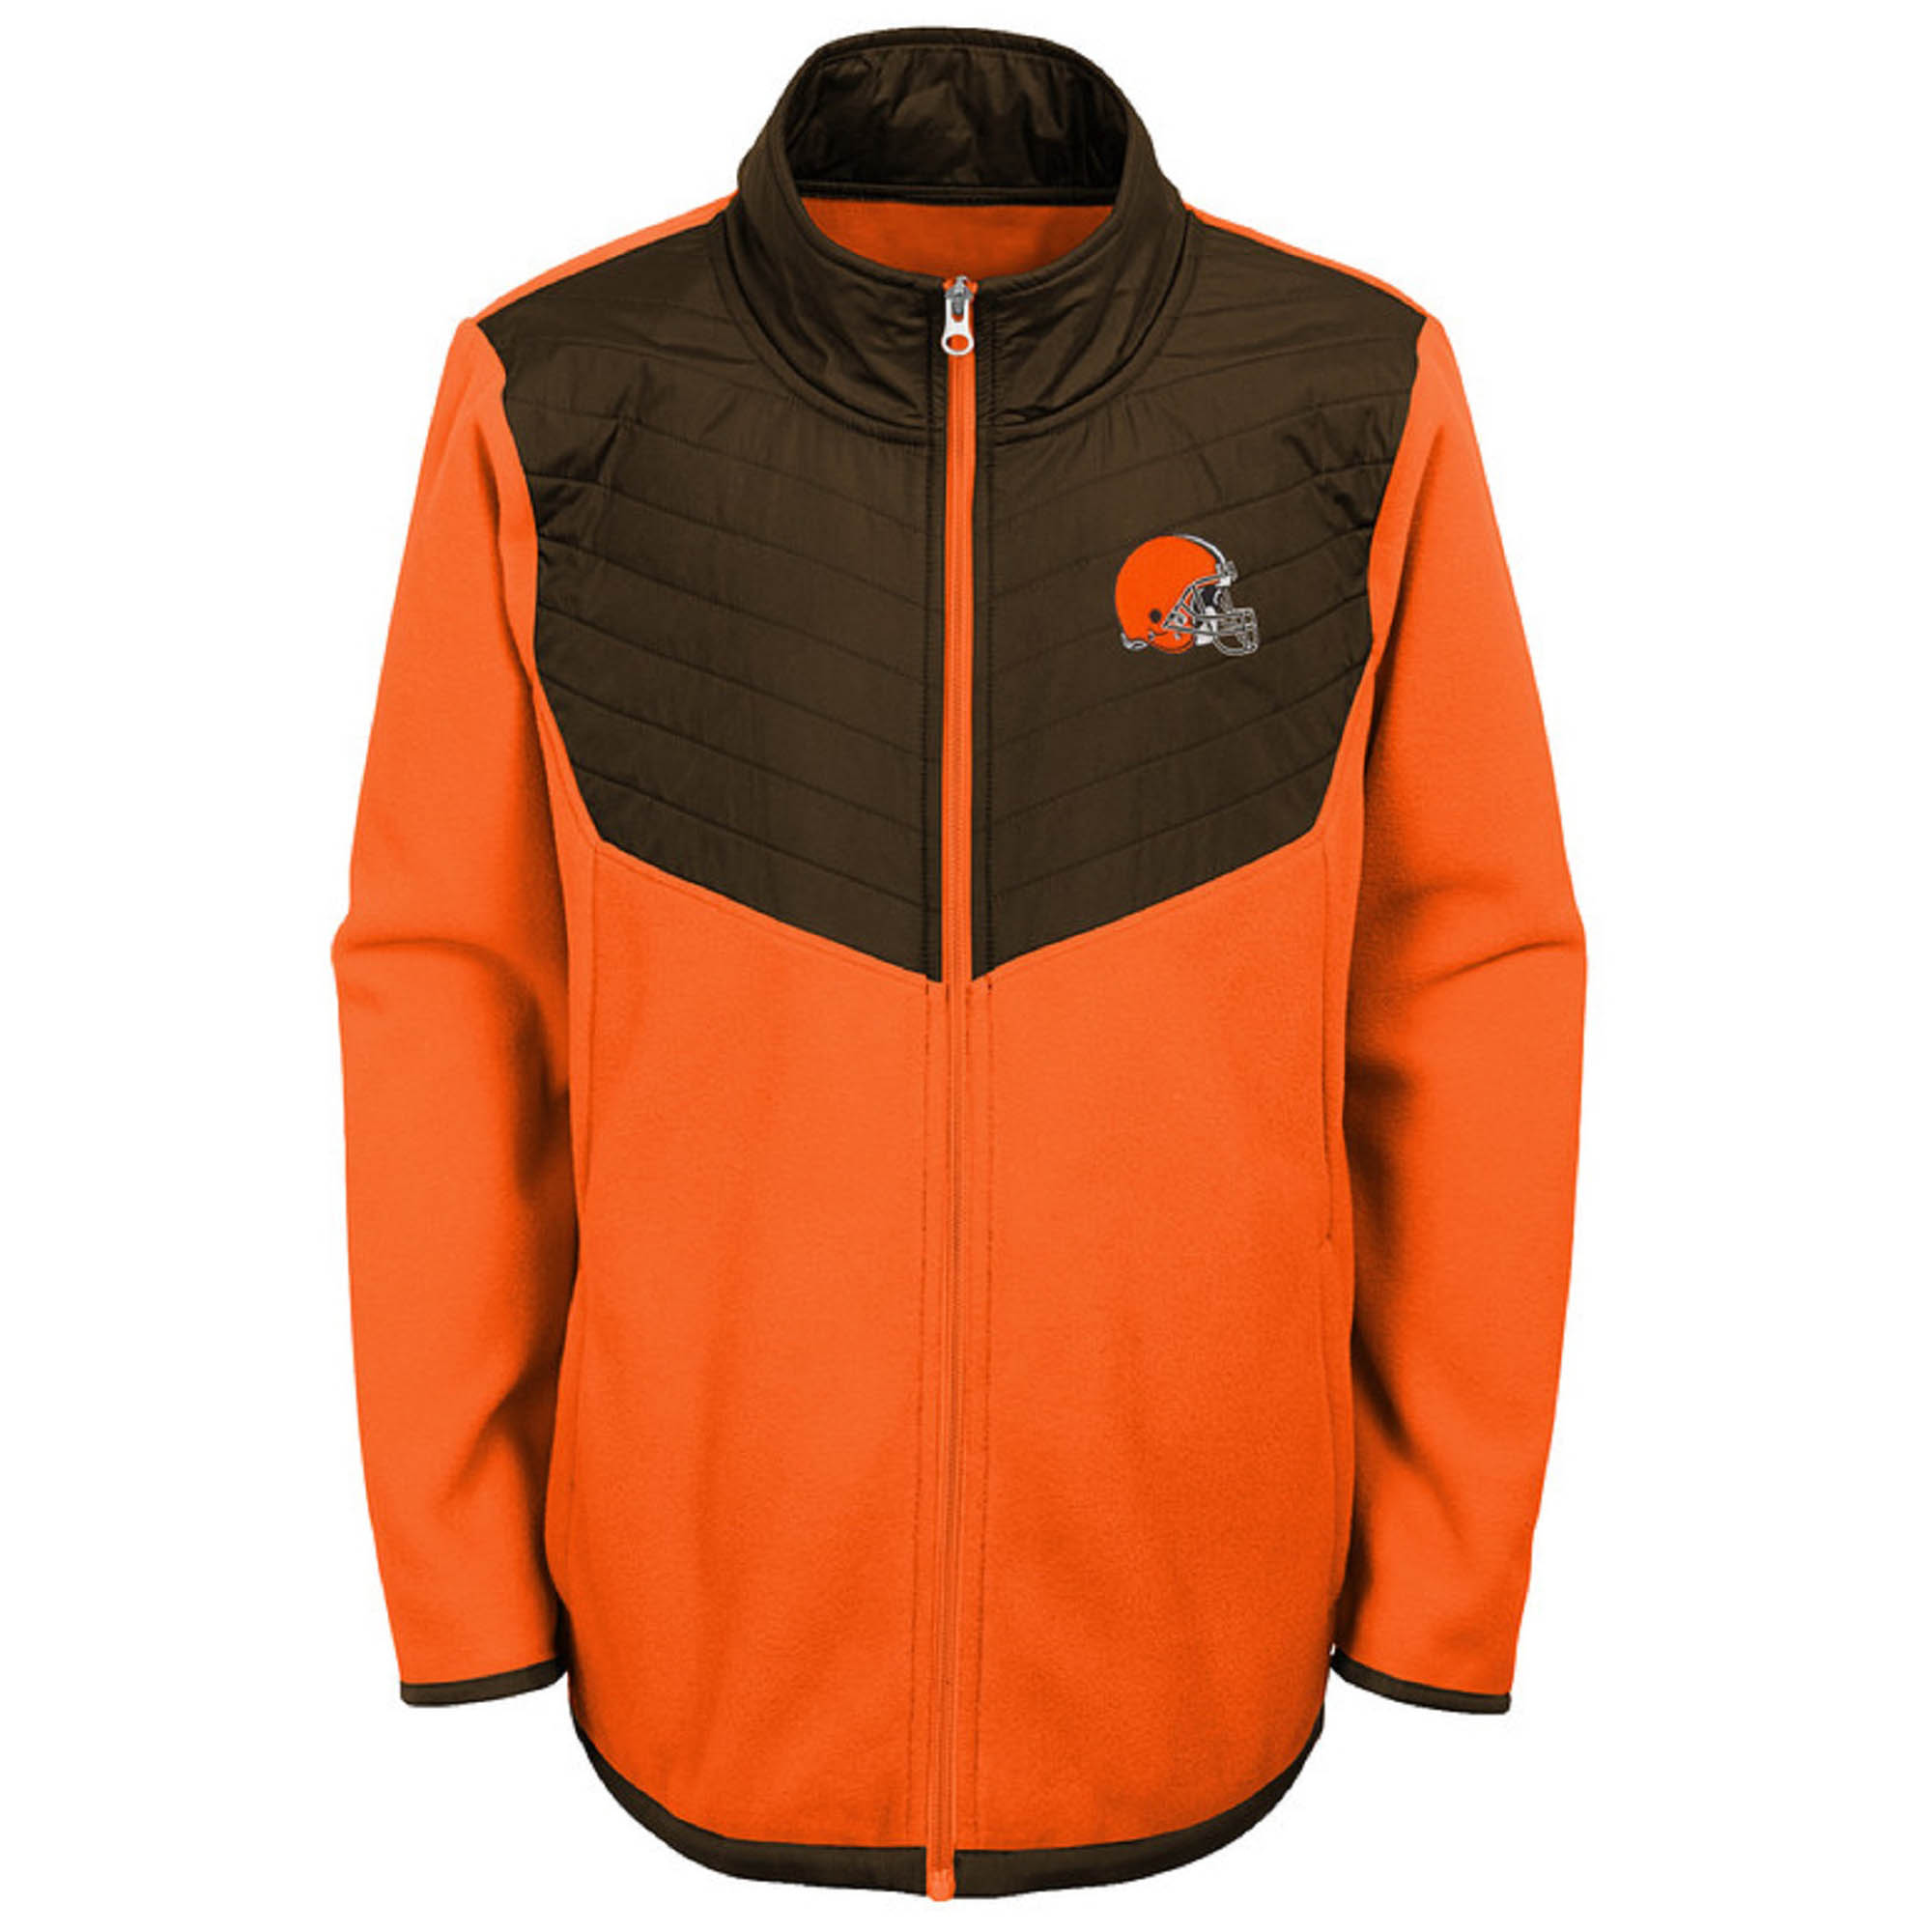 Youth Orange/Brown Cleveland Browns Polar Full-Zip Jacket